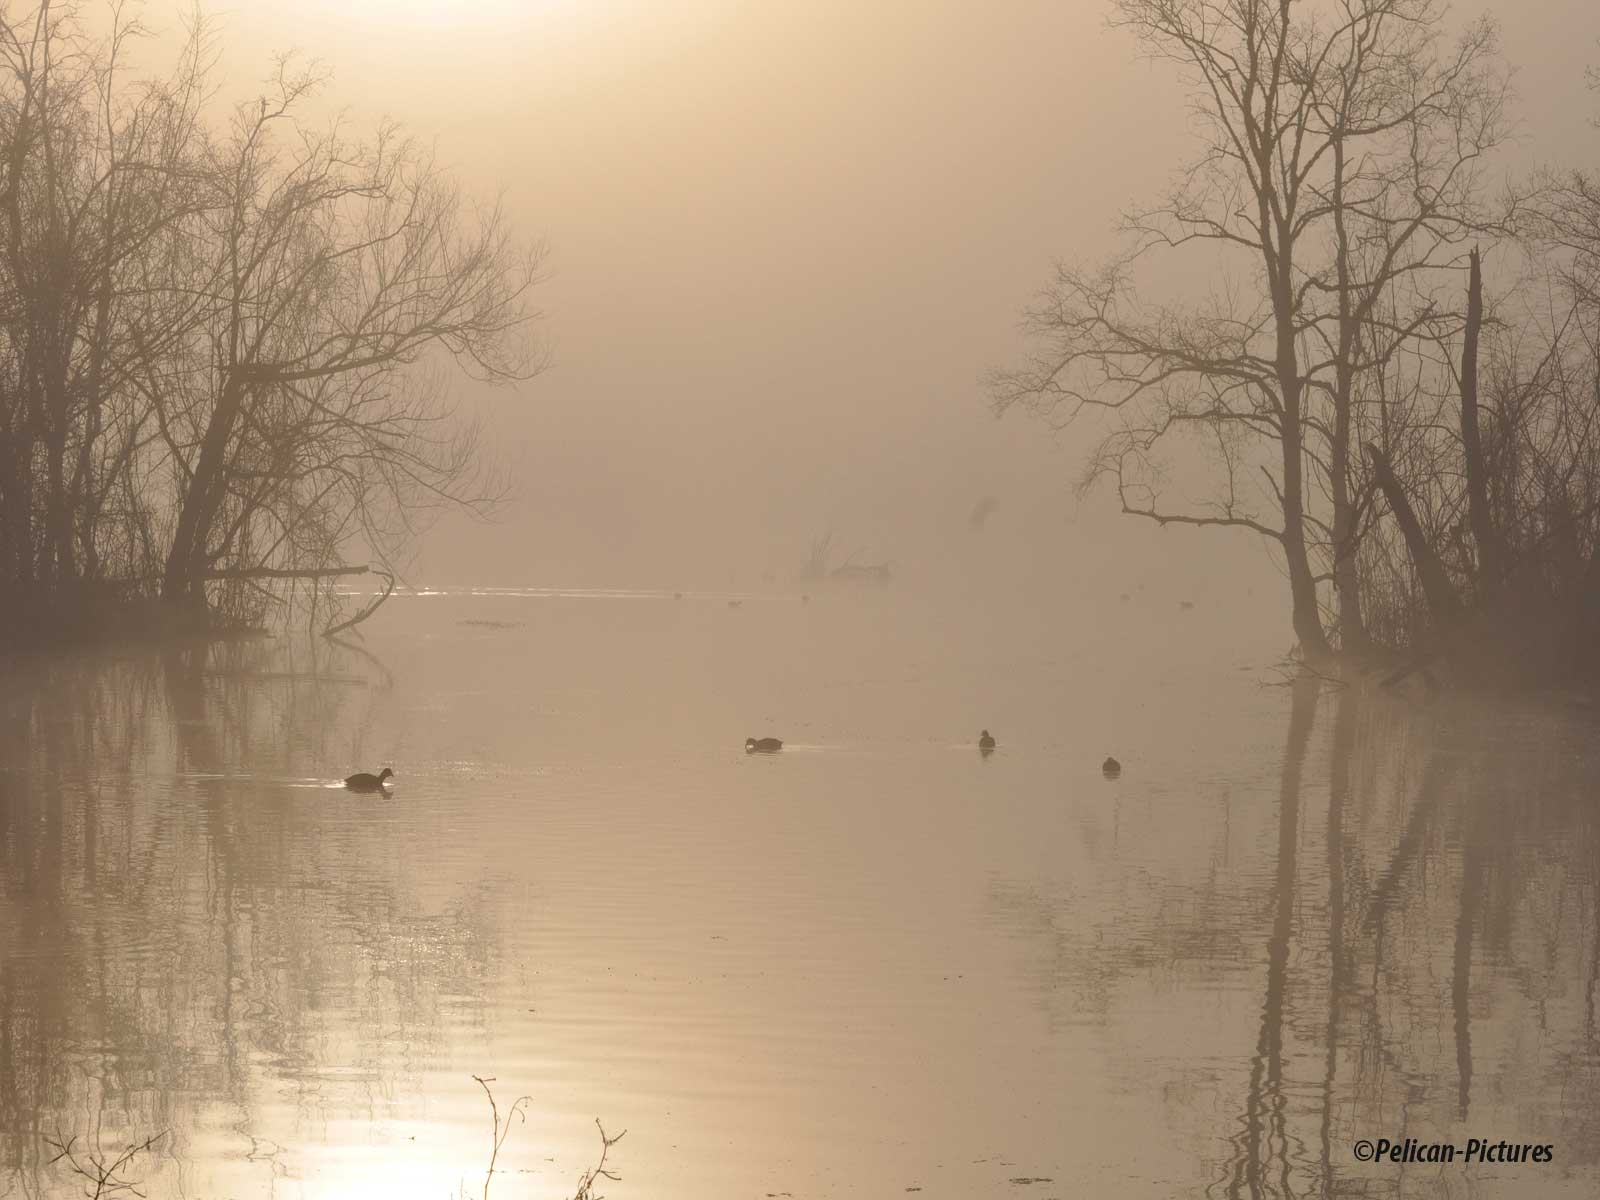 ducks-in-the-fog-pelican-pictures